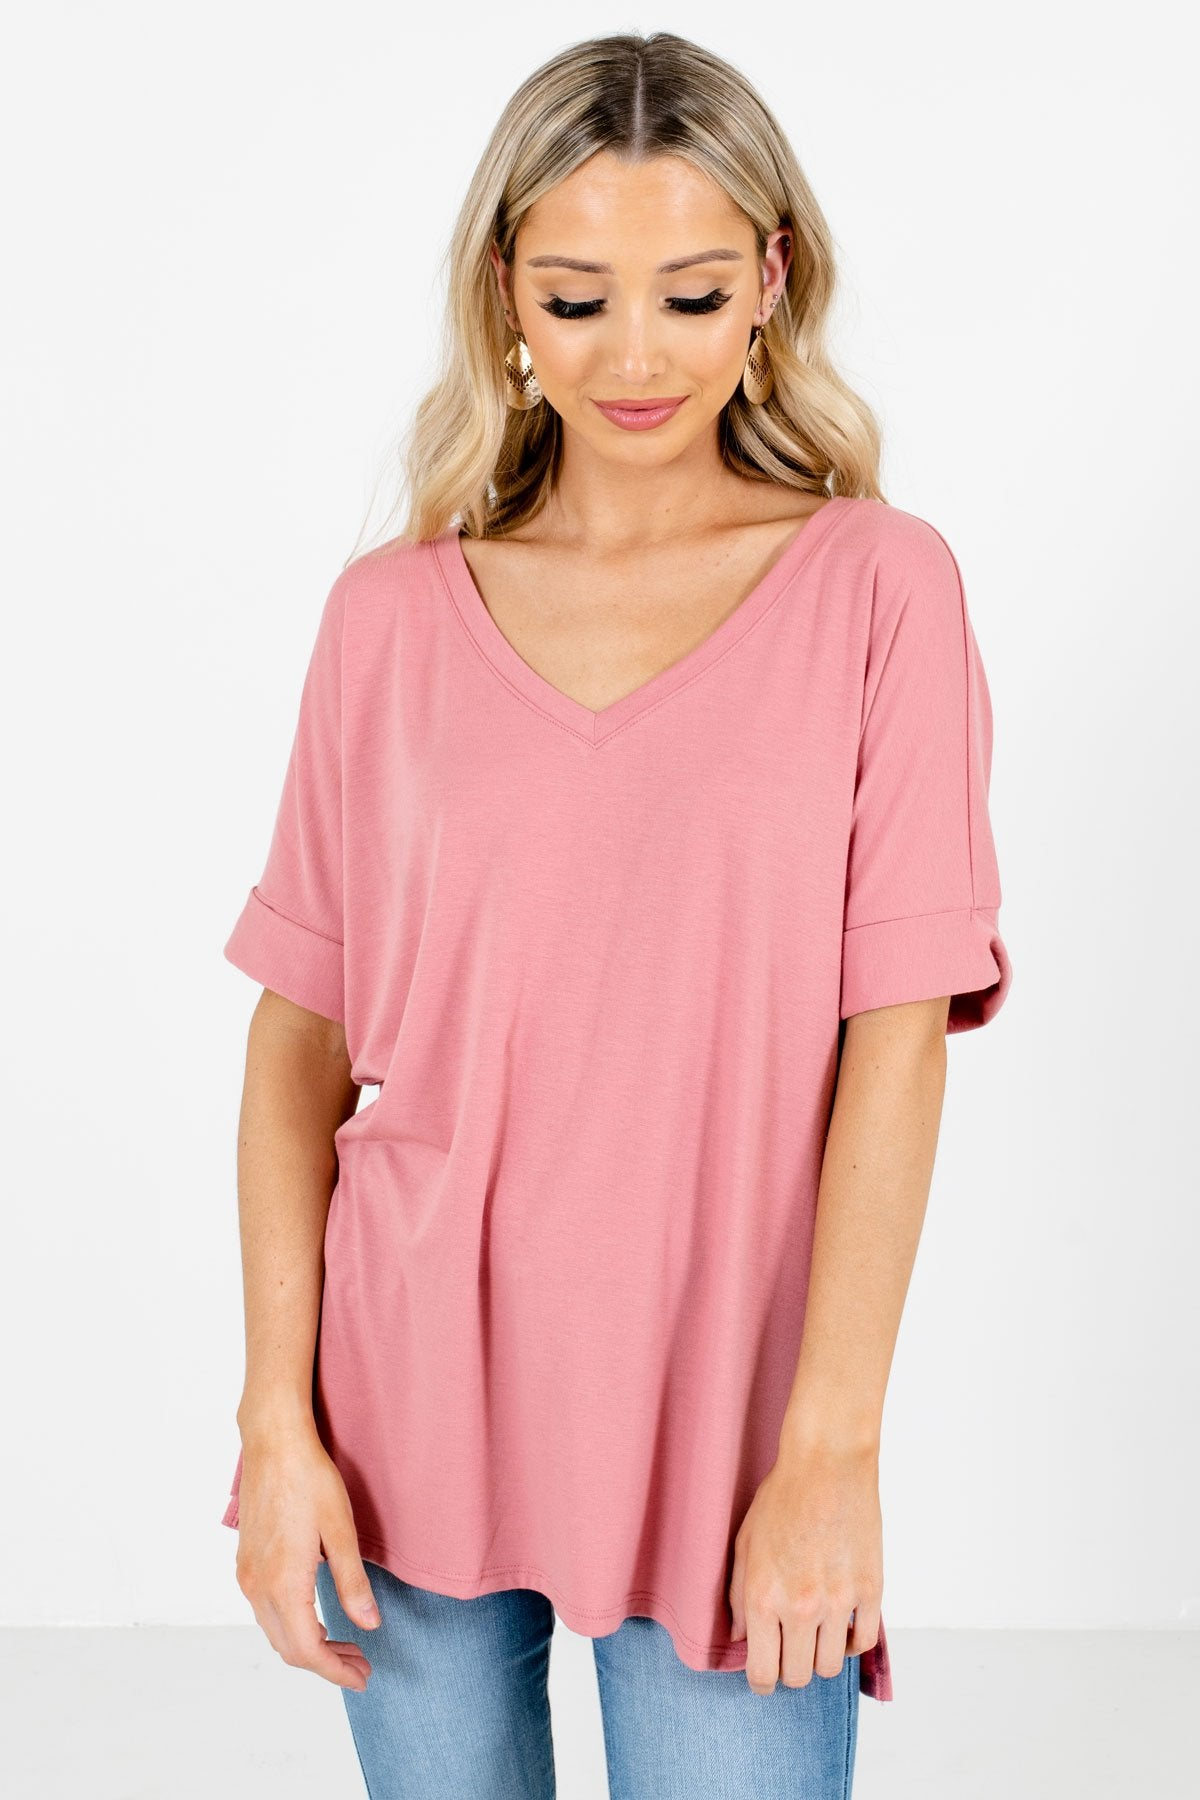 Dusty Pink V-Neckline Boutique Tops for Women